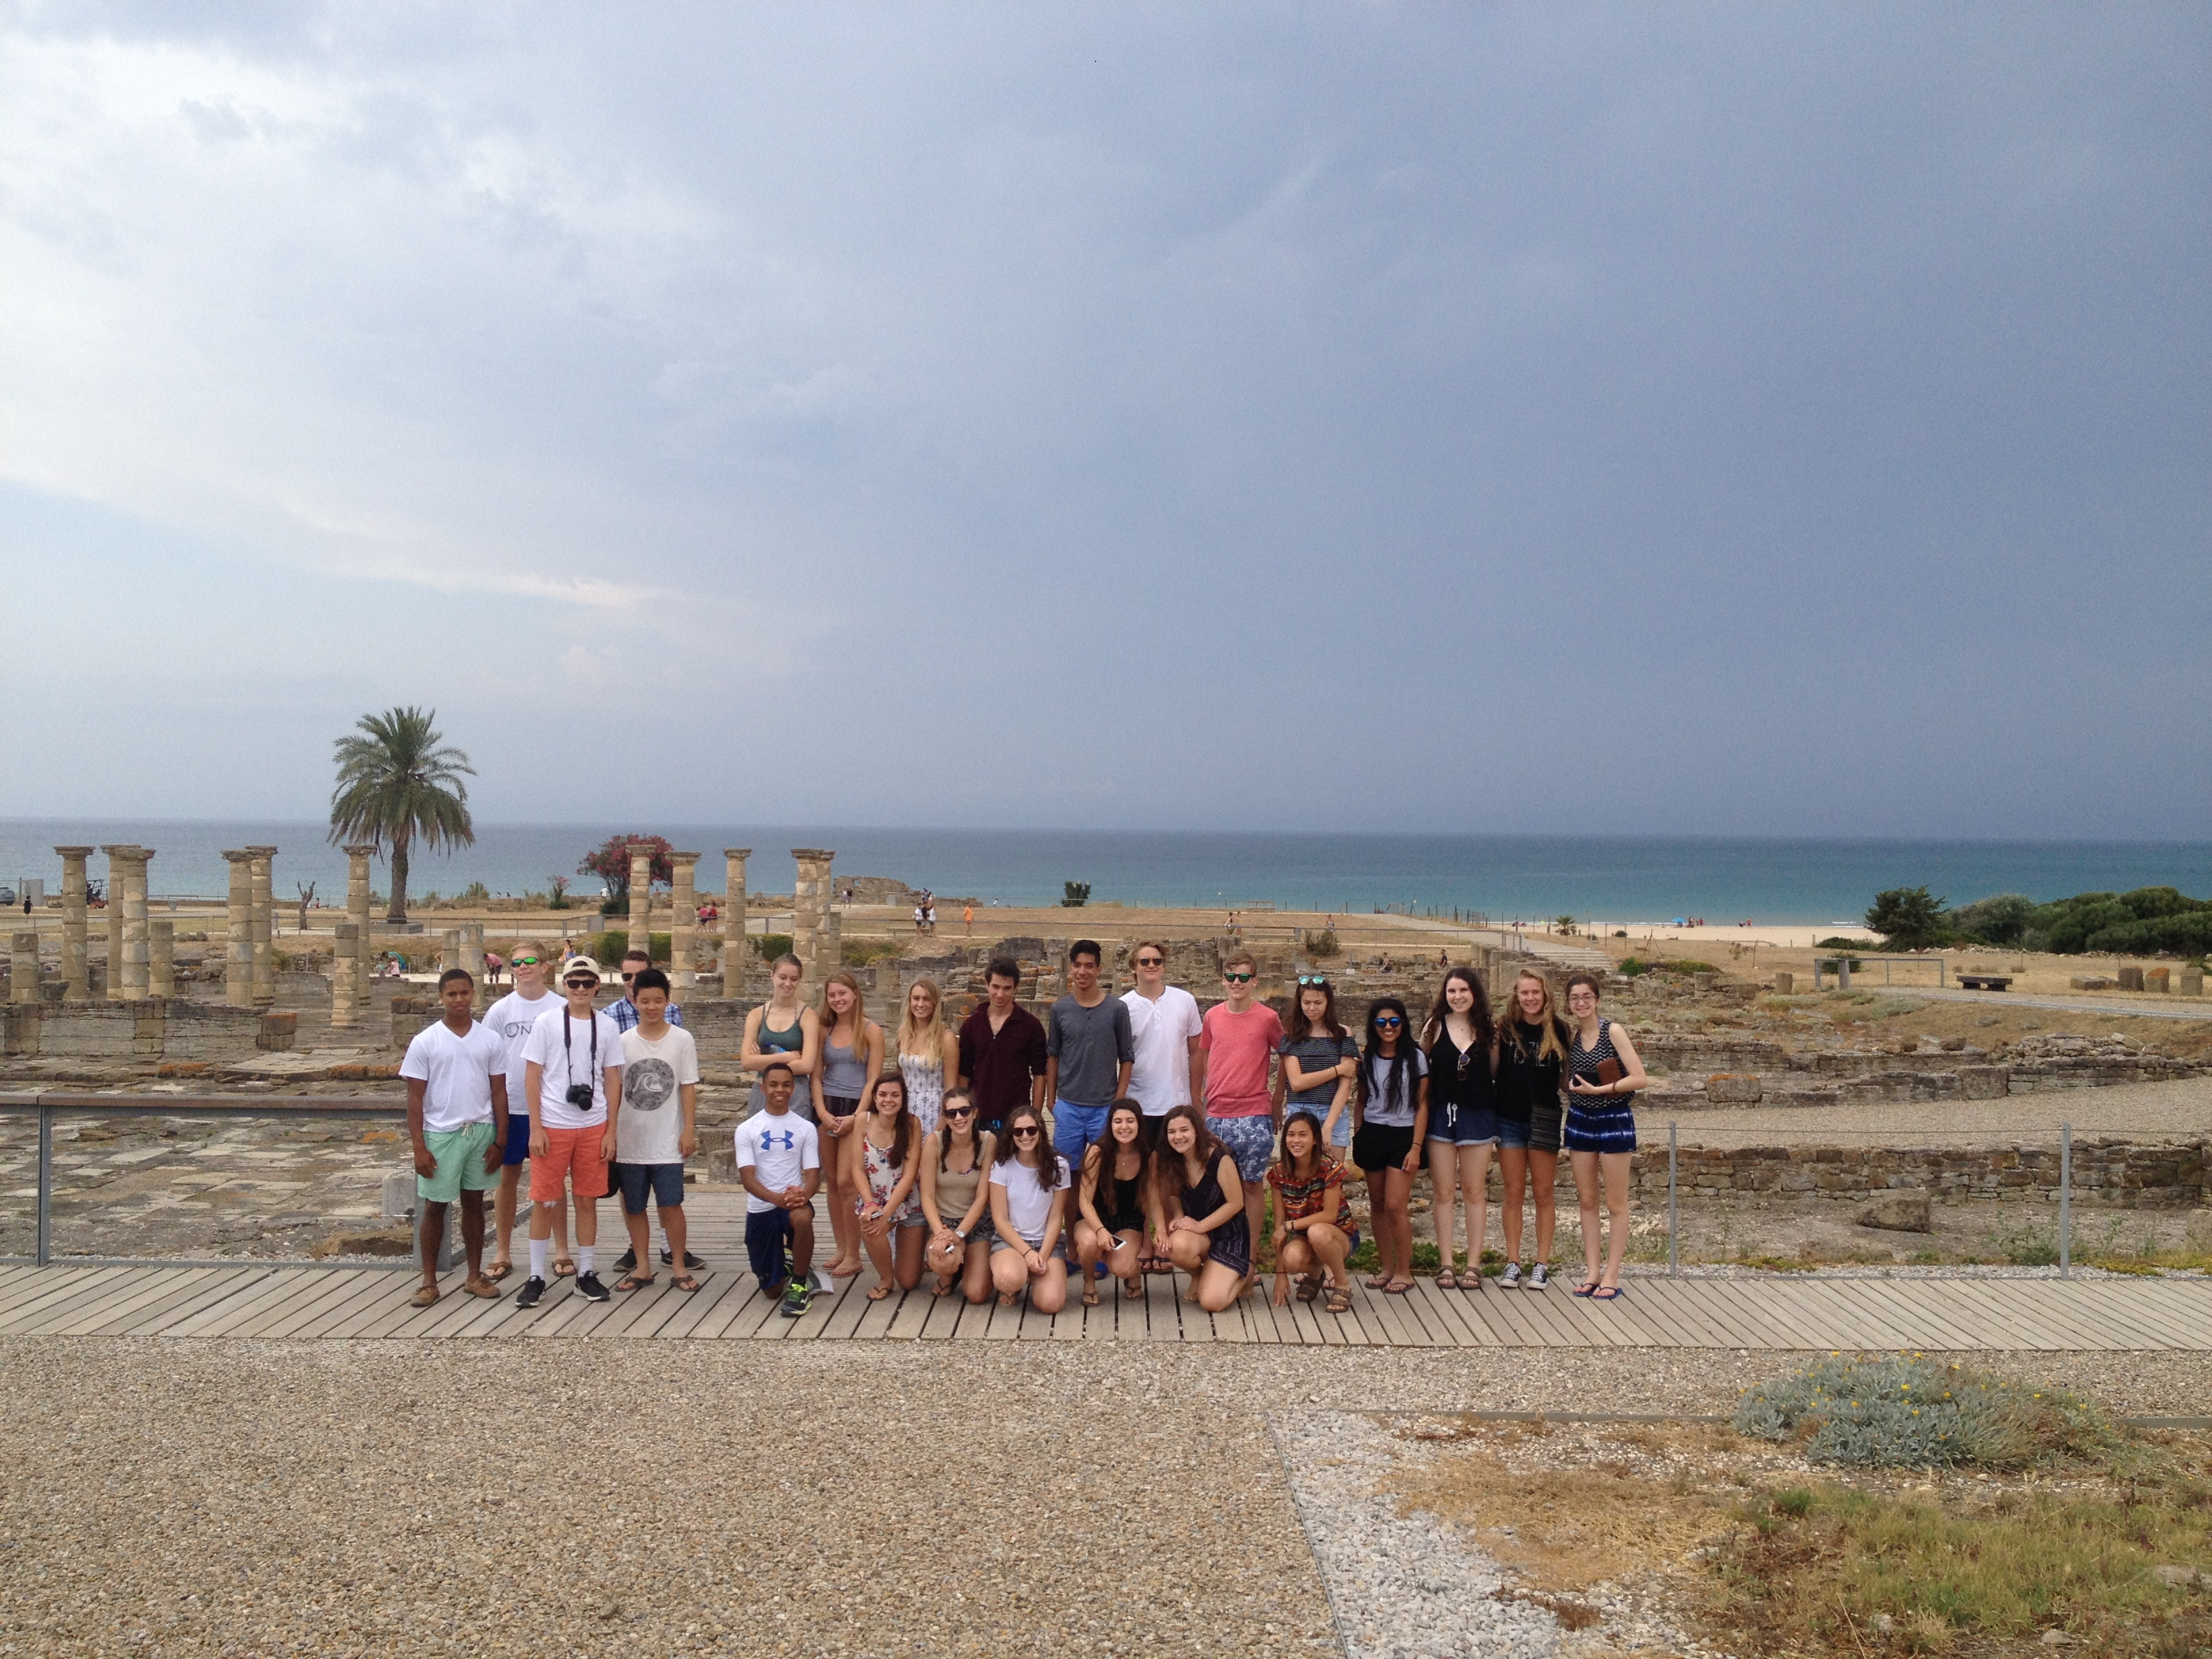 Summer Program - Travel And Tourism | Abbey Road: High School Summer Immersion Program in Cadiz, Spain